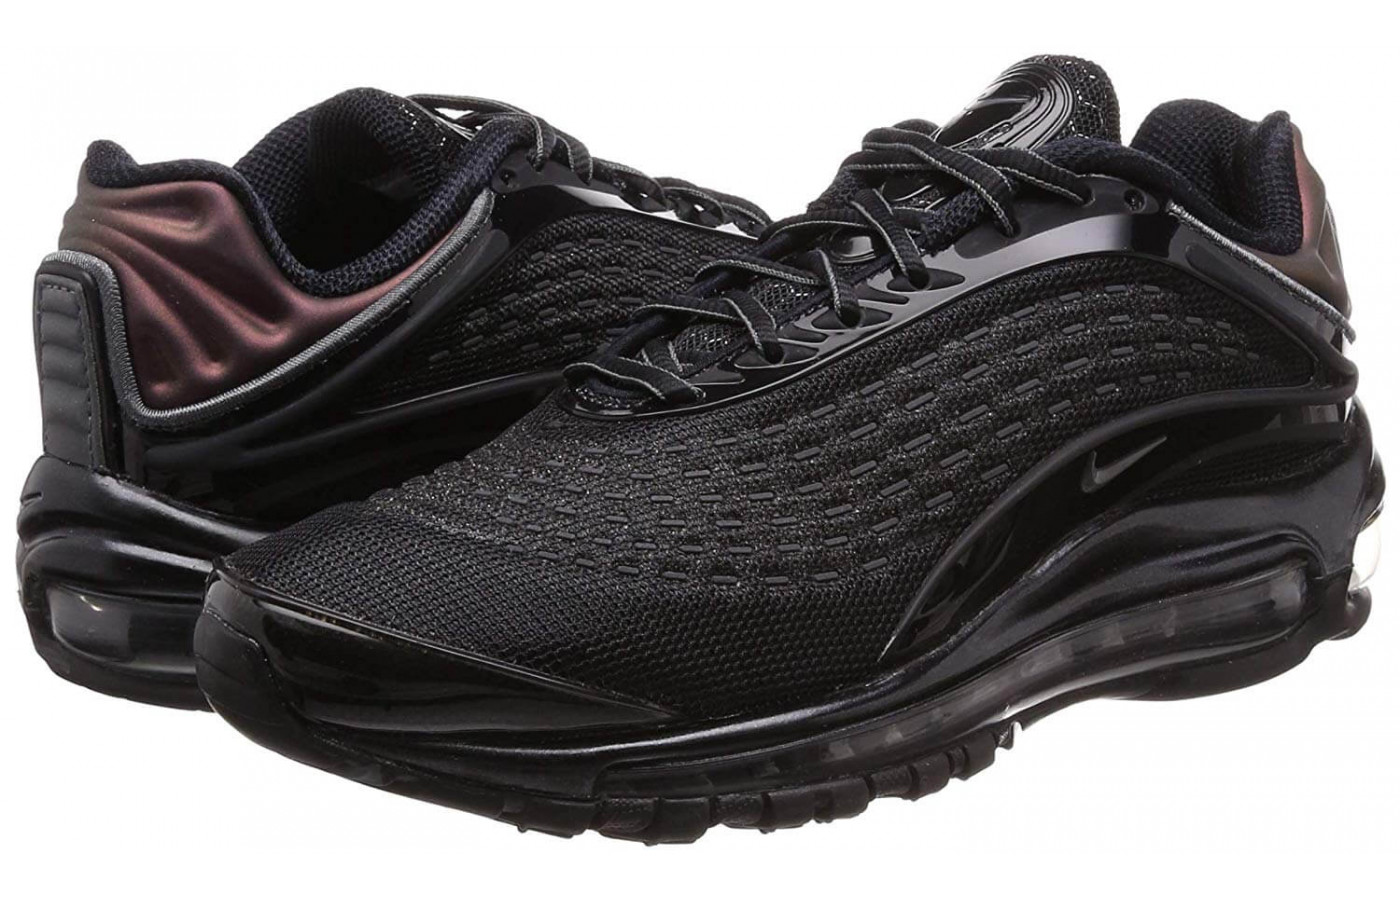 Nike Air Max Deluxe Review - To Buy or Not in Mar 2019  373007f45